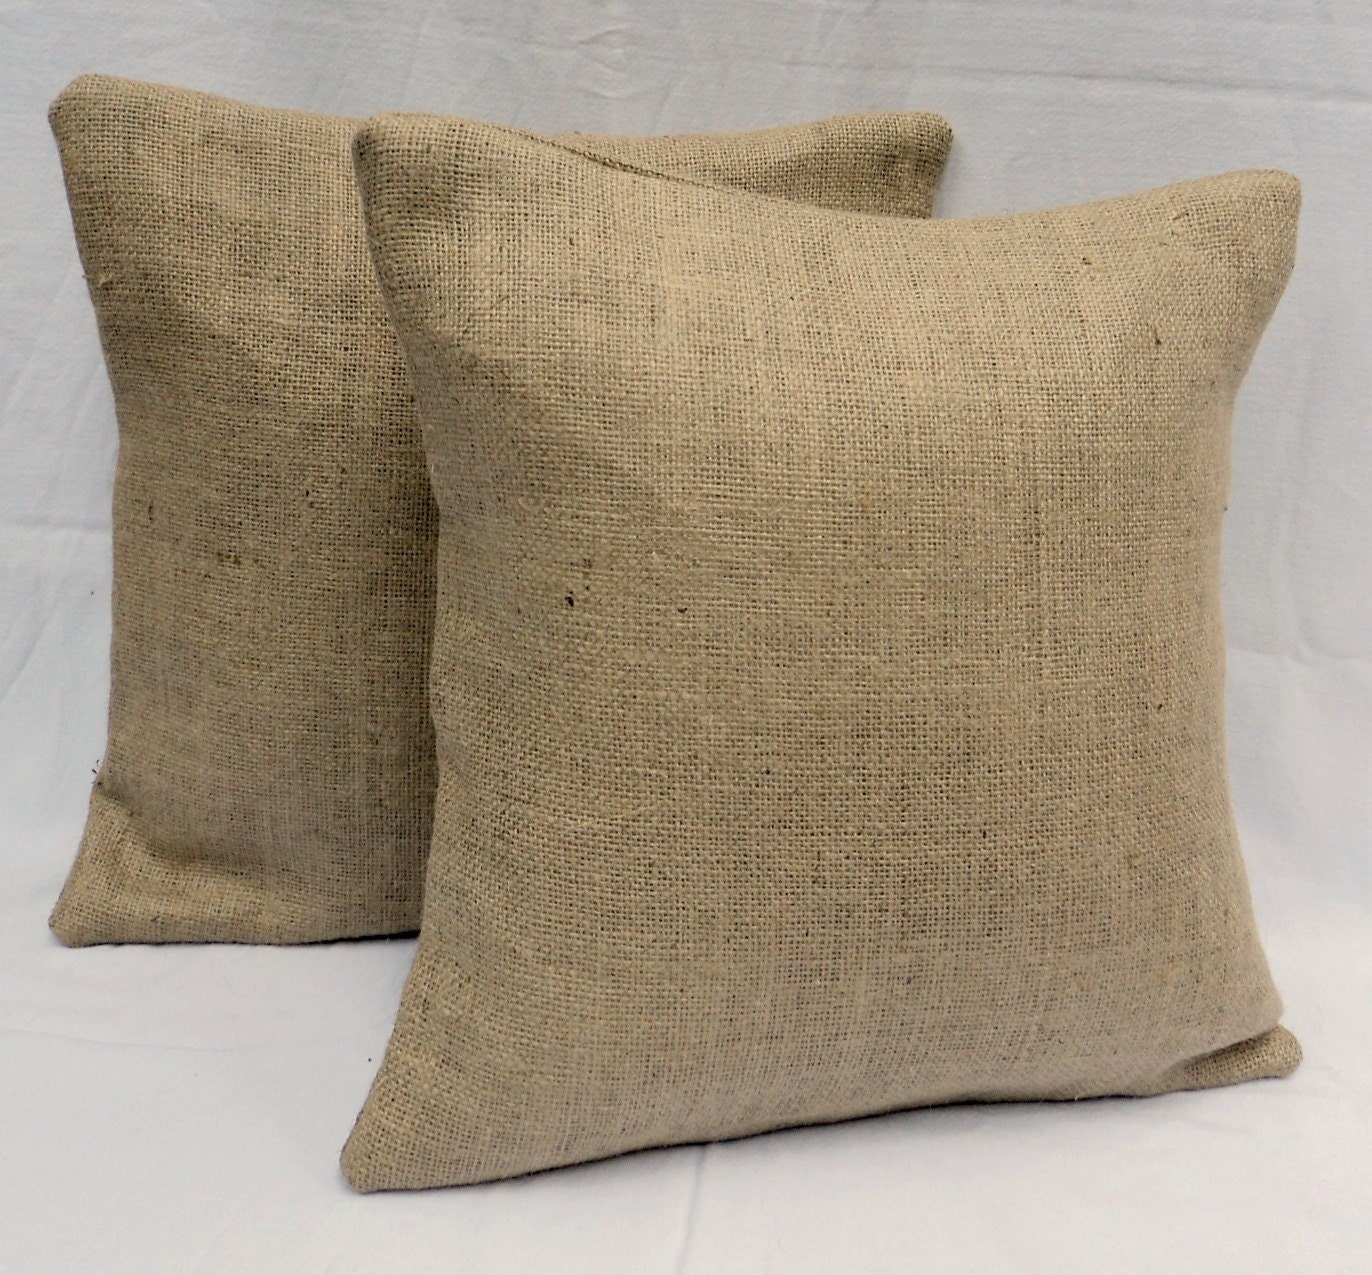 cover on personalized burlap items monogram pillow similar to pin initial etsy home